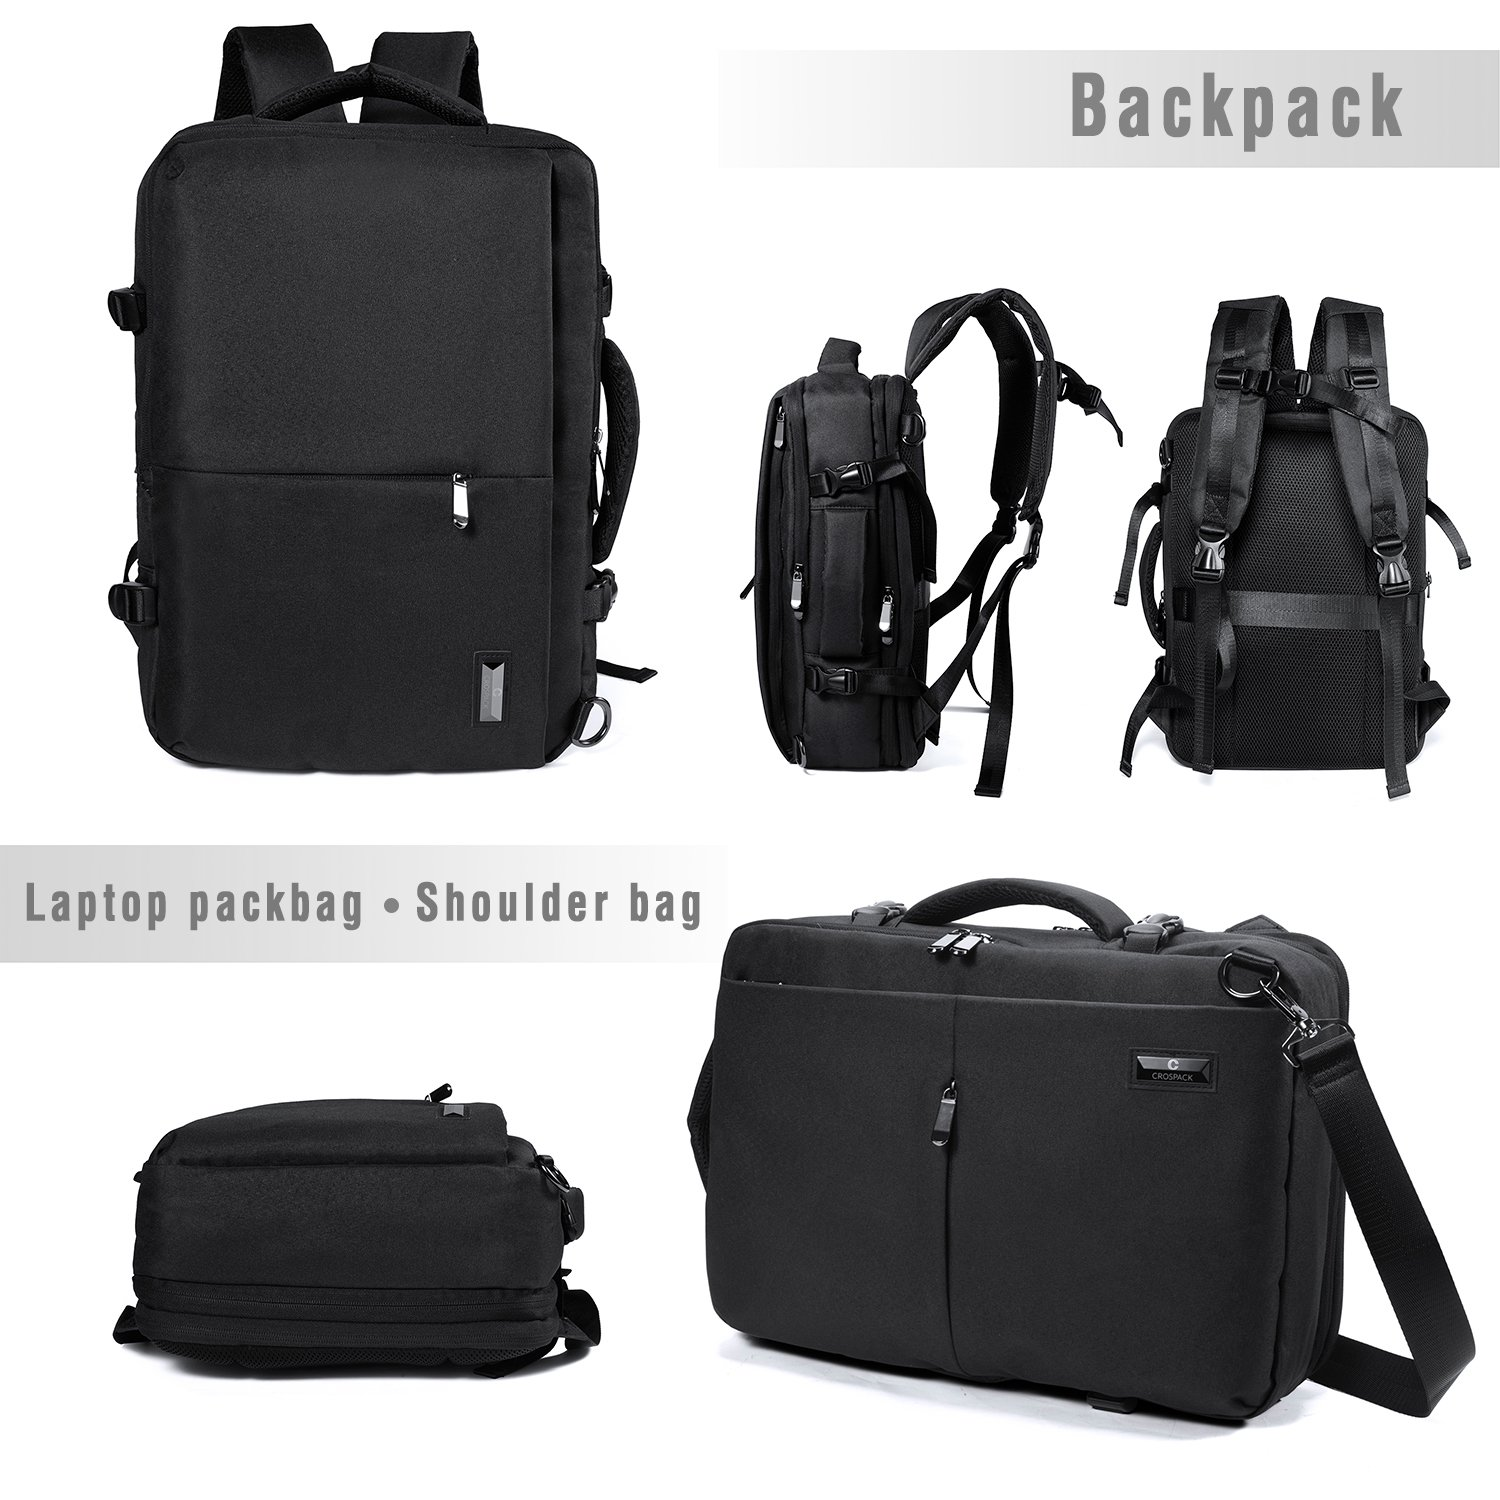 Crospack 35L Carry on Backpack Flight Approved Compression Travel Pack Cabin Bag Duffel Hiking Backpack Water-resistant Camping Backpack Large Capacity Laptop Backpac Black by Syntrific (Image #4)